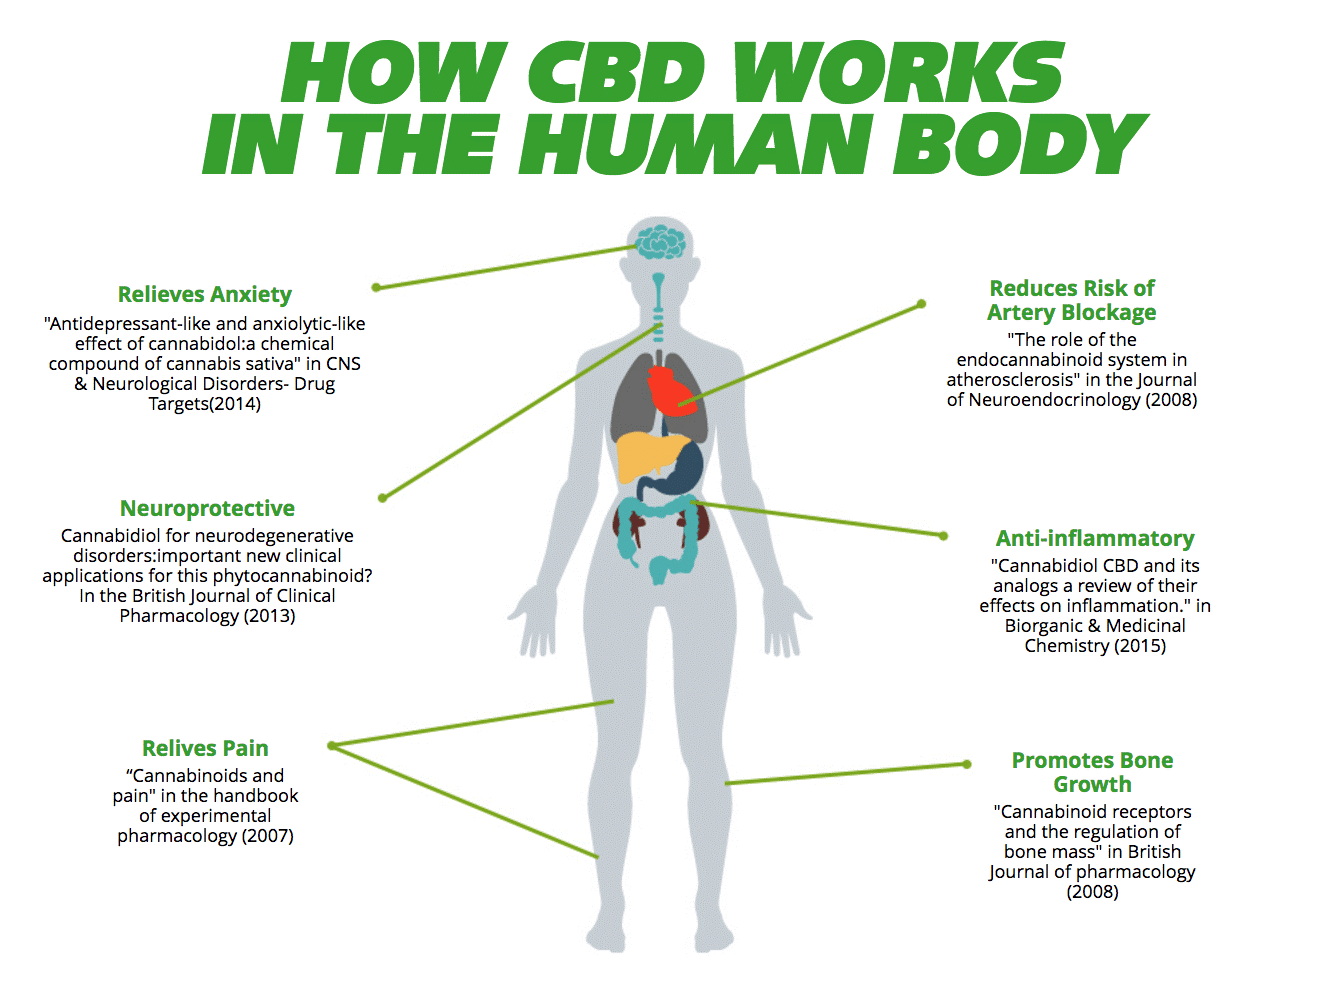 How CBD works in the Human Body.